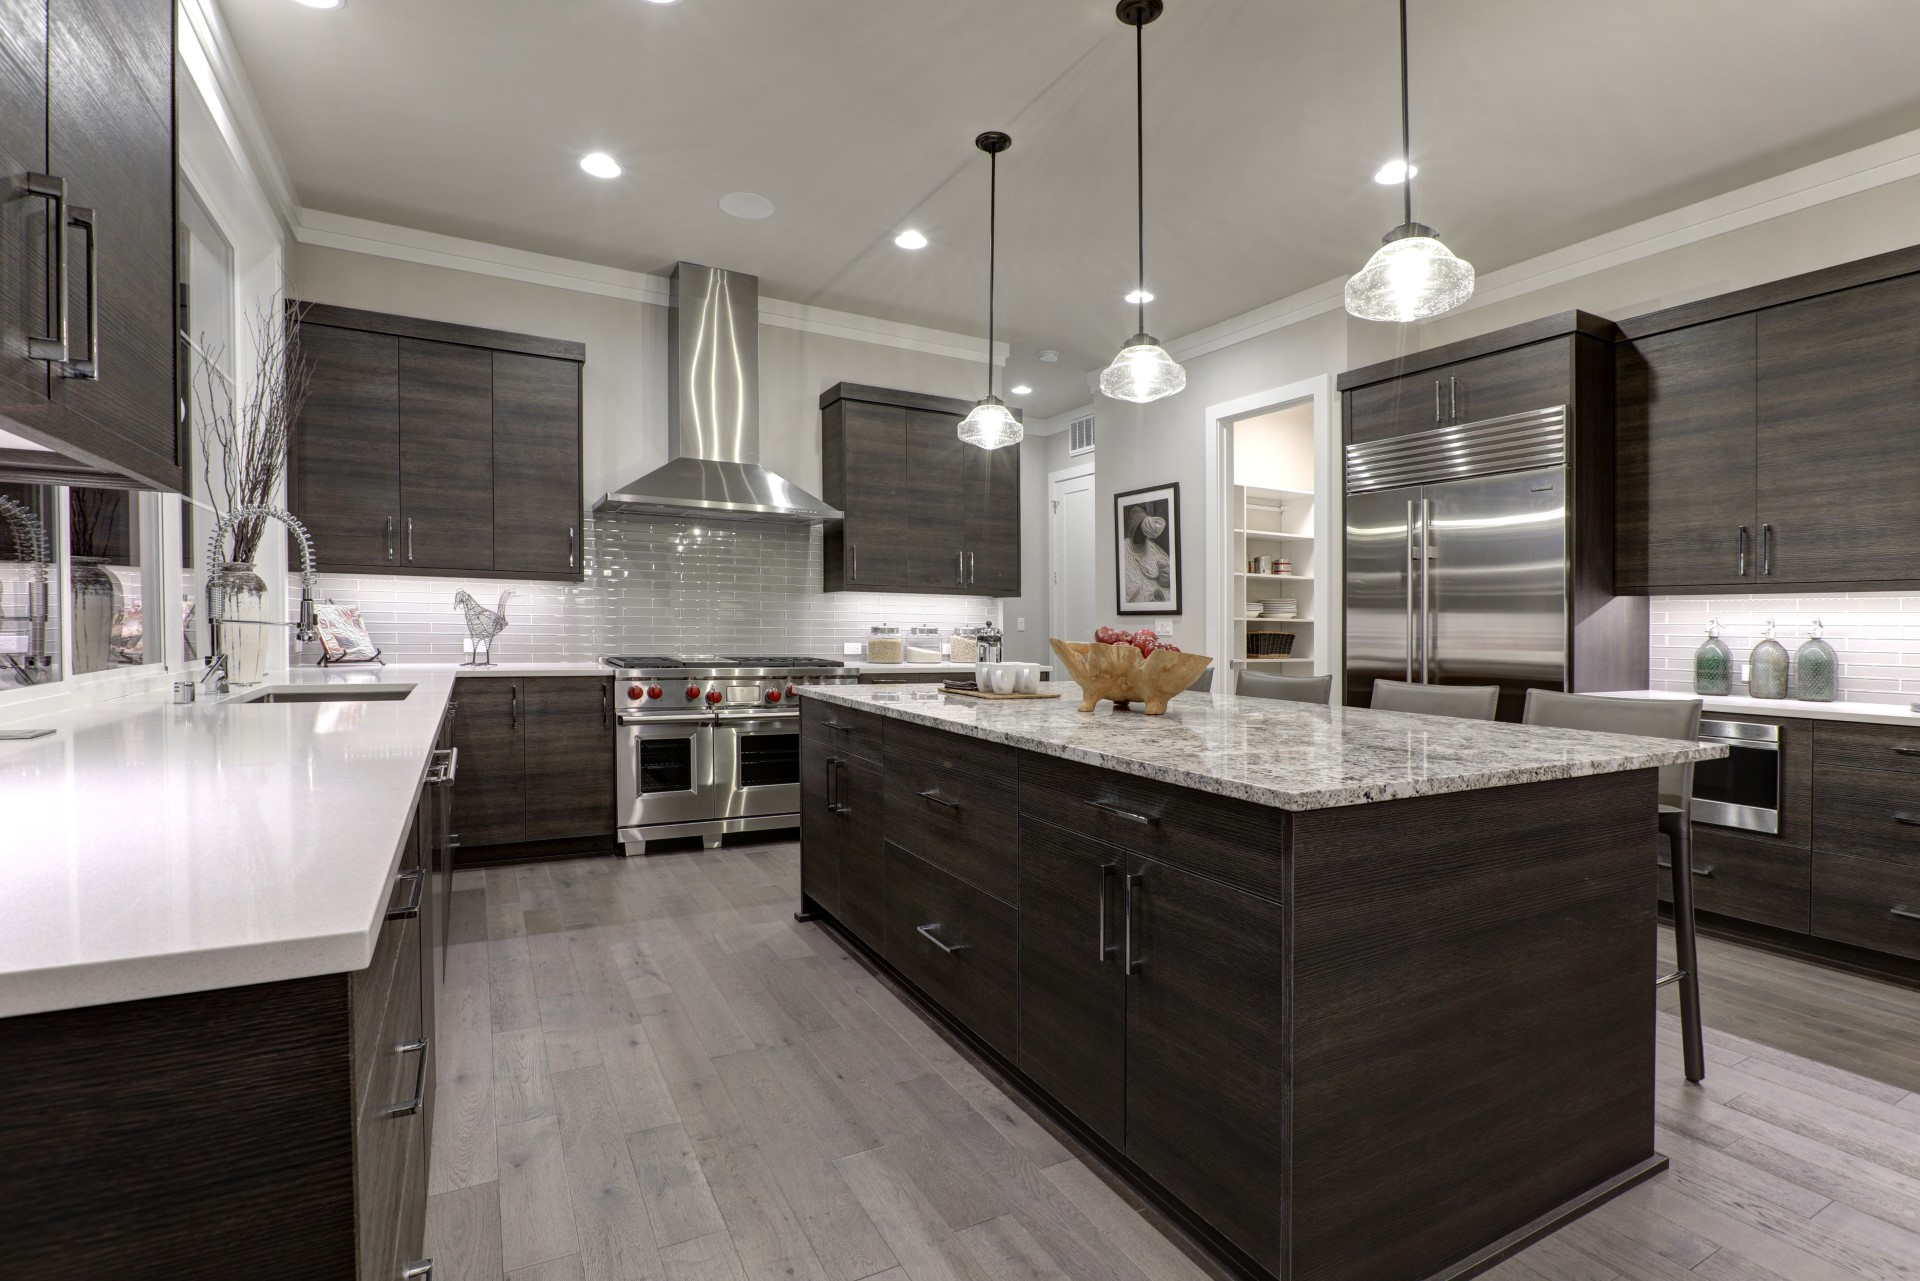 I kitchen with dark cabinets helps bring forth the beauty of your light flooring. A kitchen needs contrast and physique to achieve harmony in this modern style. When you mix wood, stone, and the bright sheen of stainless steel, it helps achieve the diversity that makes this style pop!